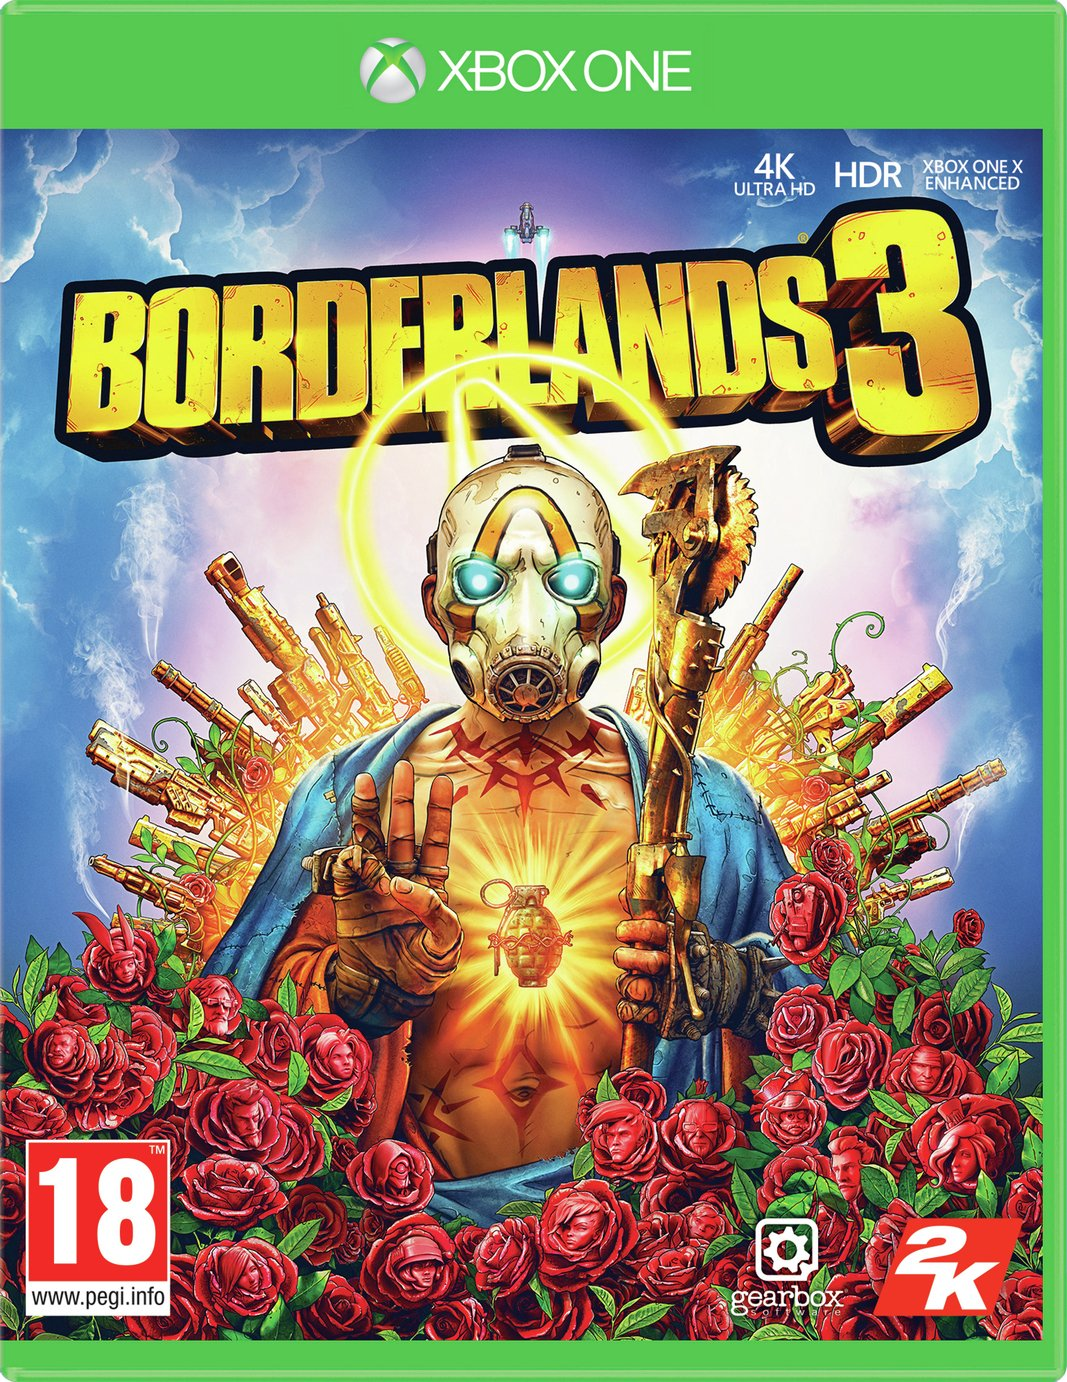 Borderlands 3 Xbox One Pre-Order Game